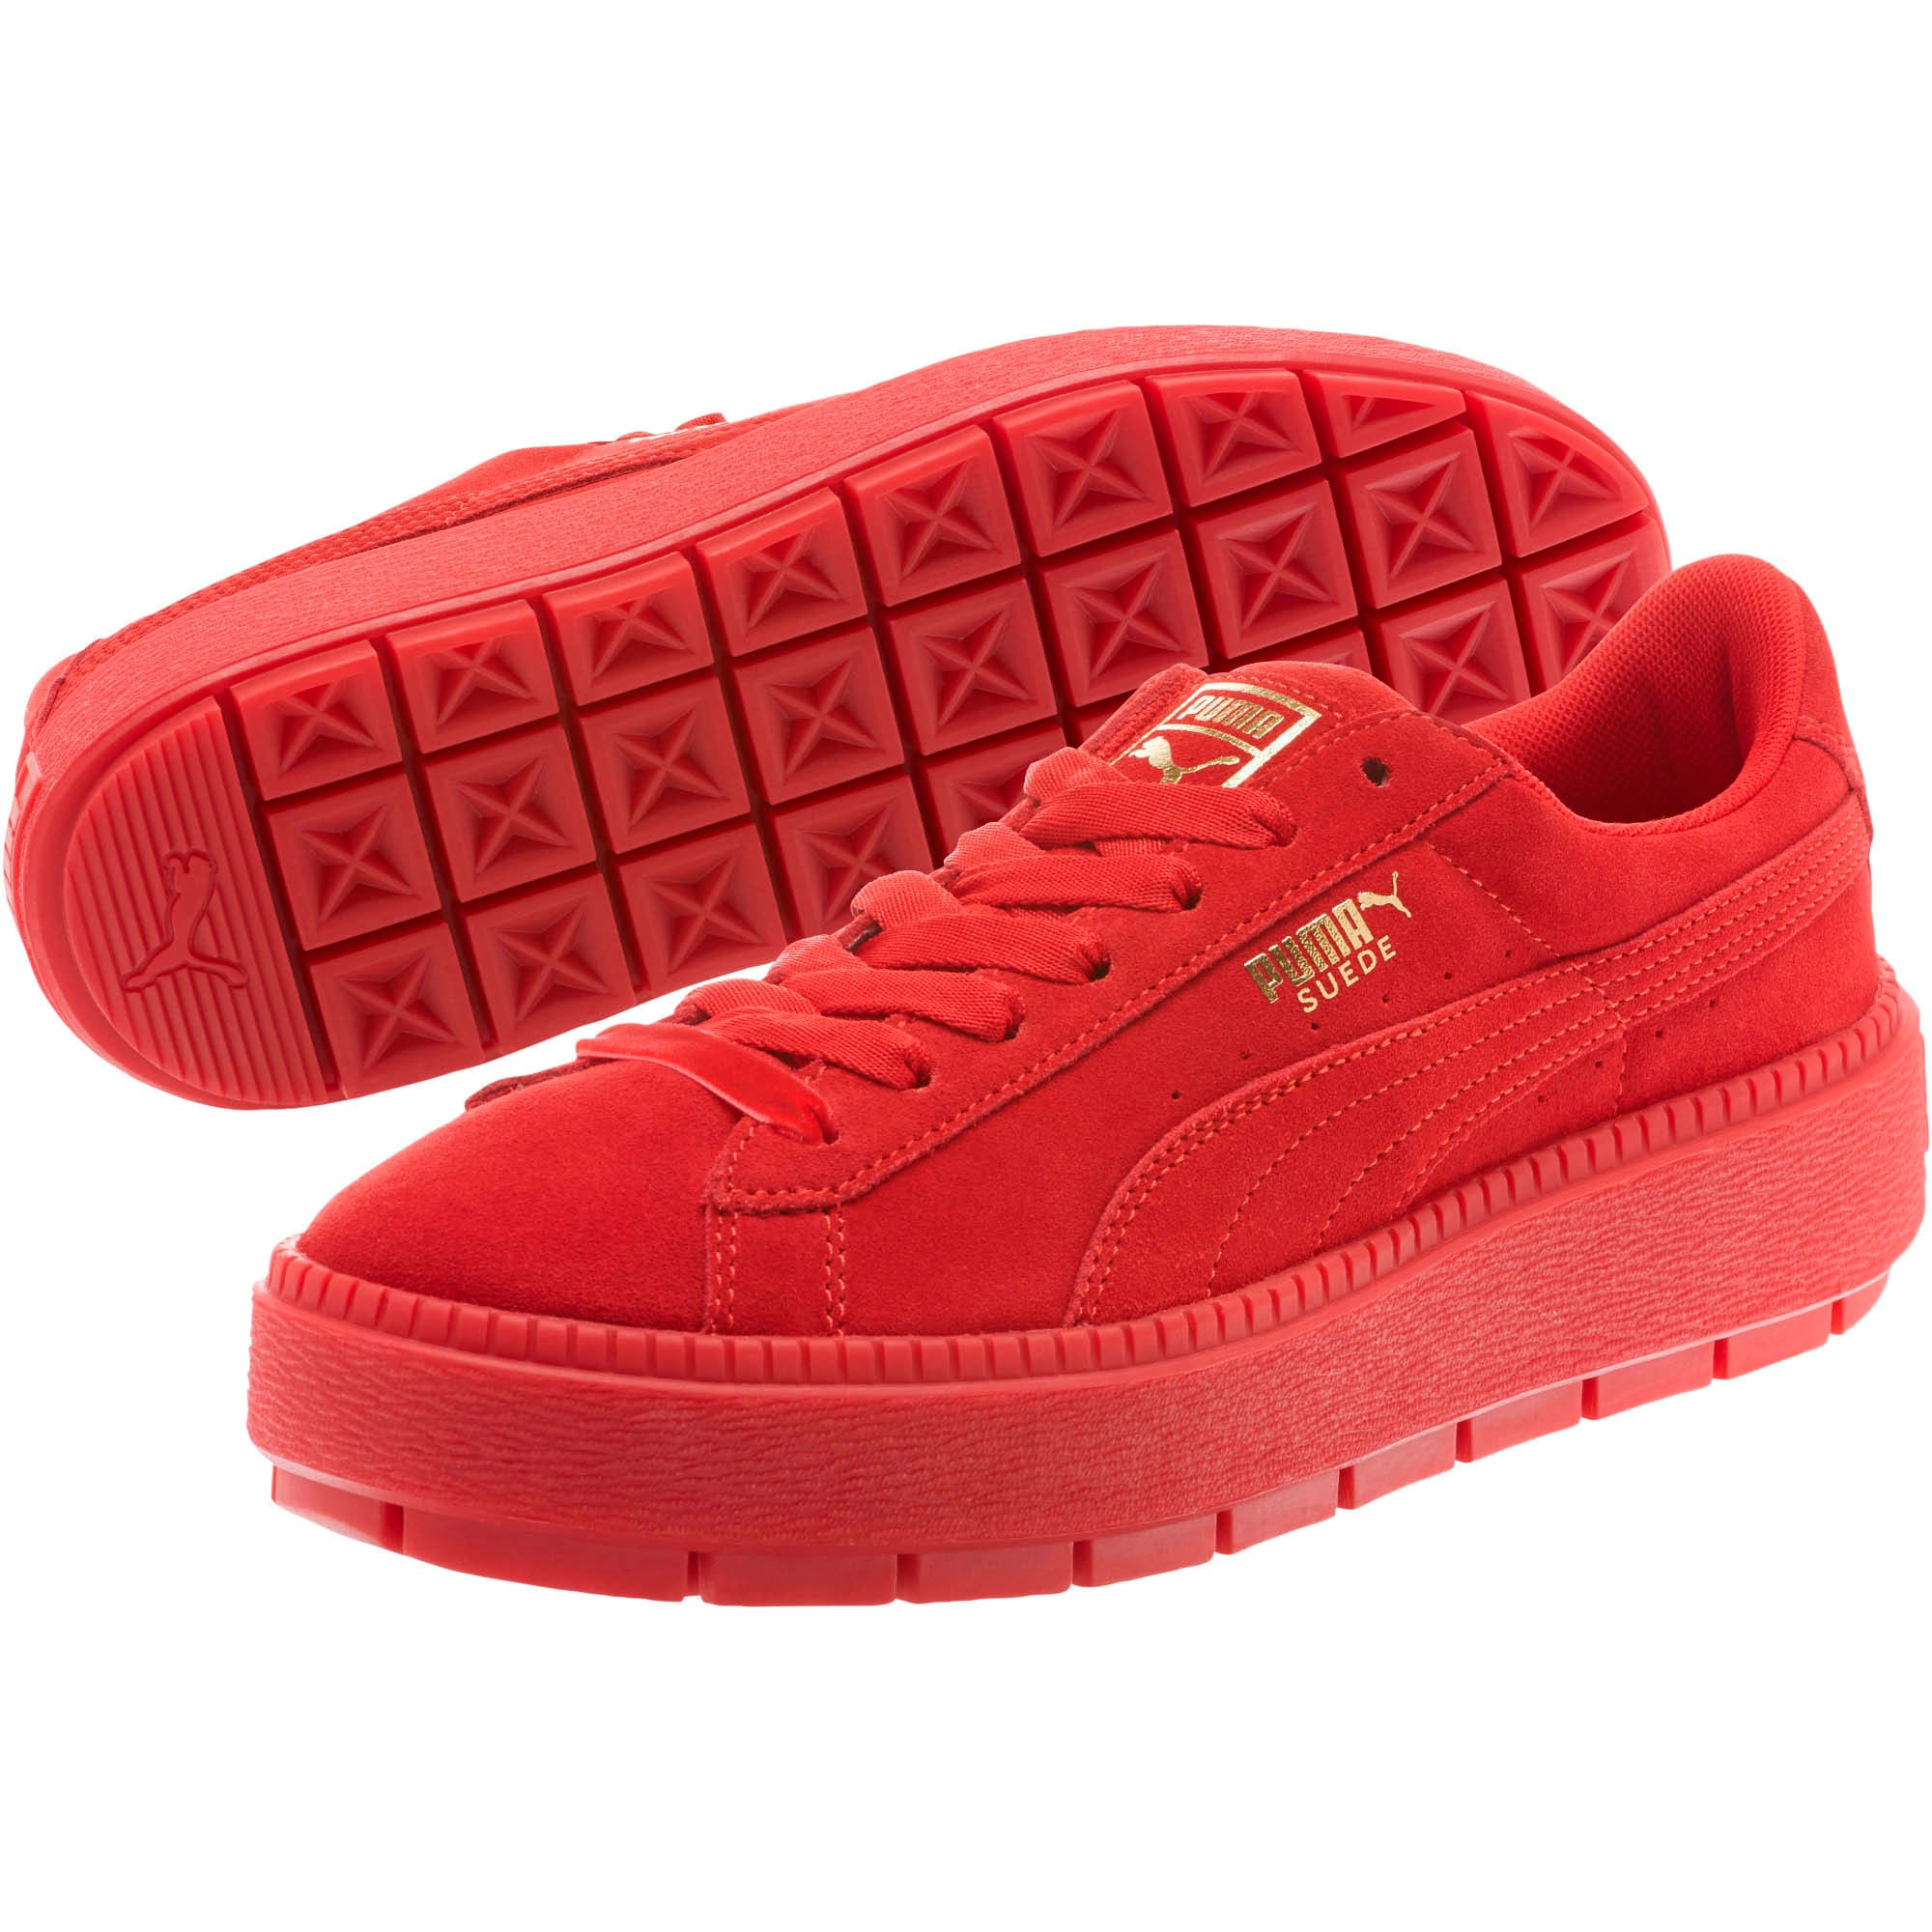 Thumbnail 2 of Suede Platform Trace Valentine's Day Women's Sneakers, Red Dahlia-Barbados Cherry, medium